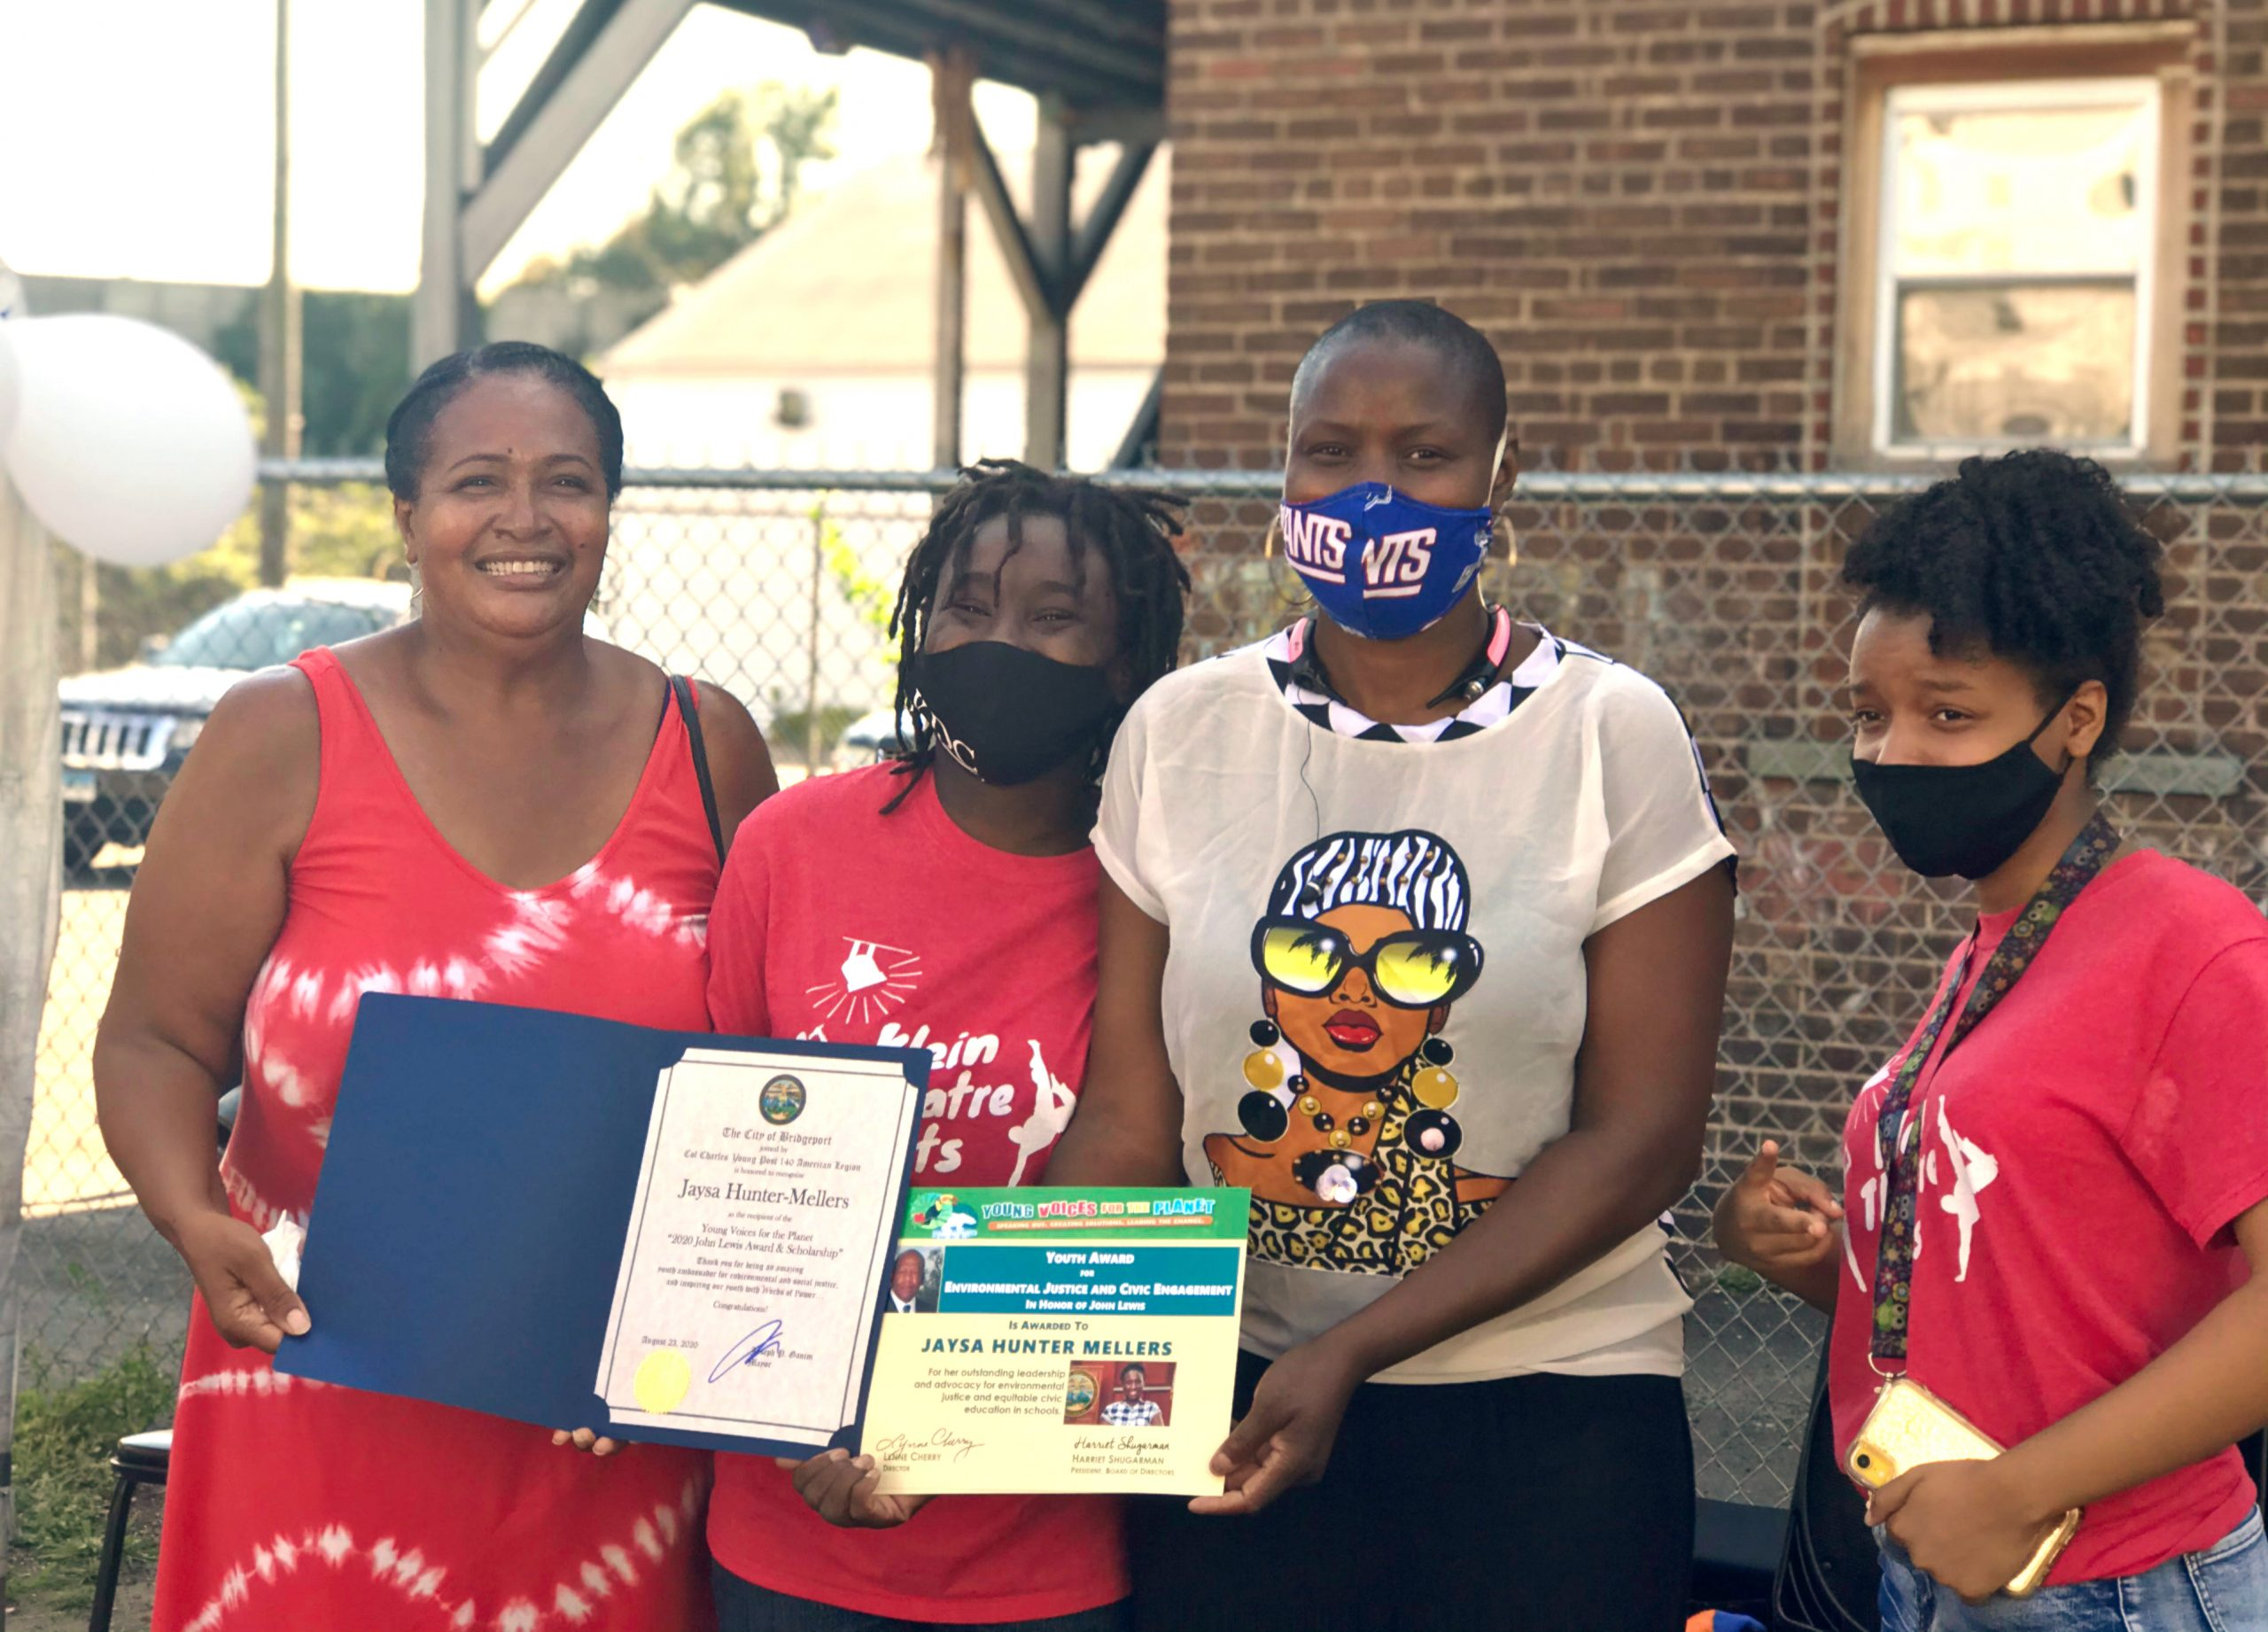 15 year old YVFP Youth Ambassador Jaysa Hunter-Mellers receives the YVFP award for Environmental Justice and Civic Engagement in Honor of Rep. John Lewis Award